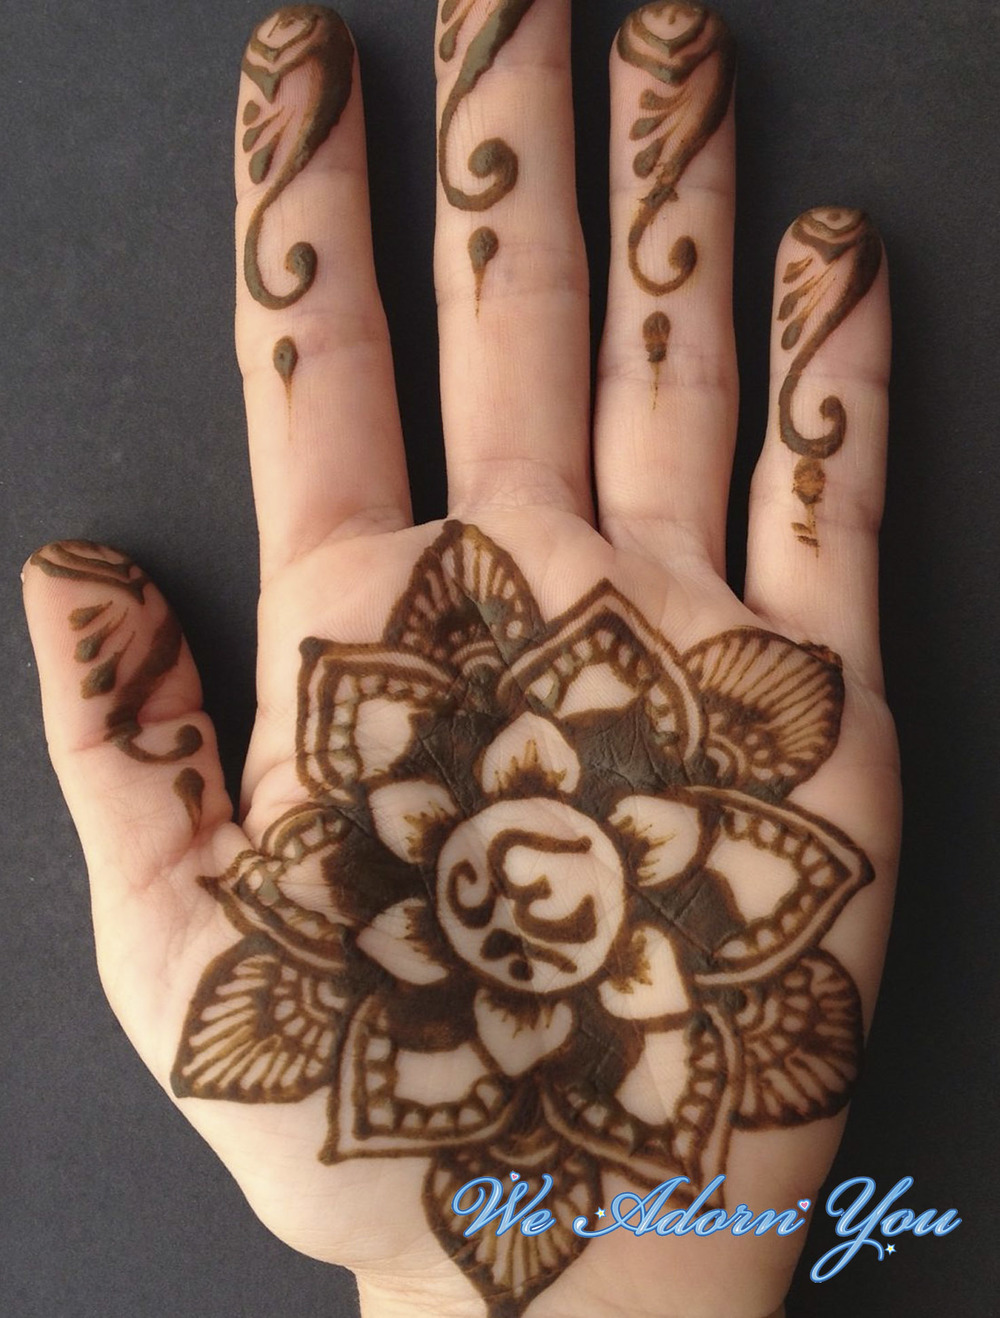 Henna Ohm - We Adorn You.jpg